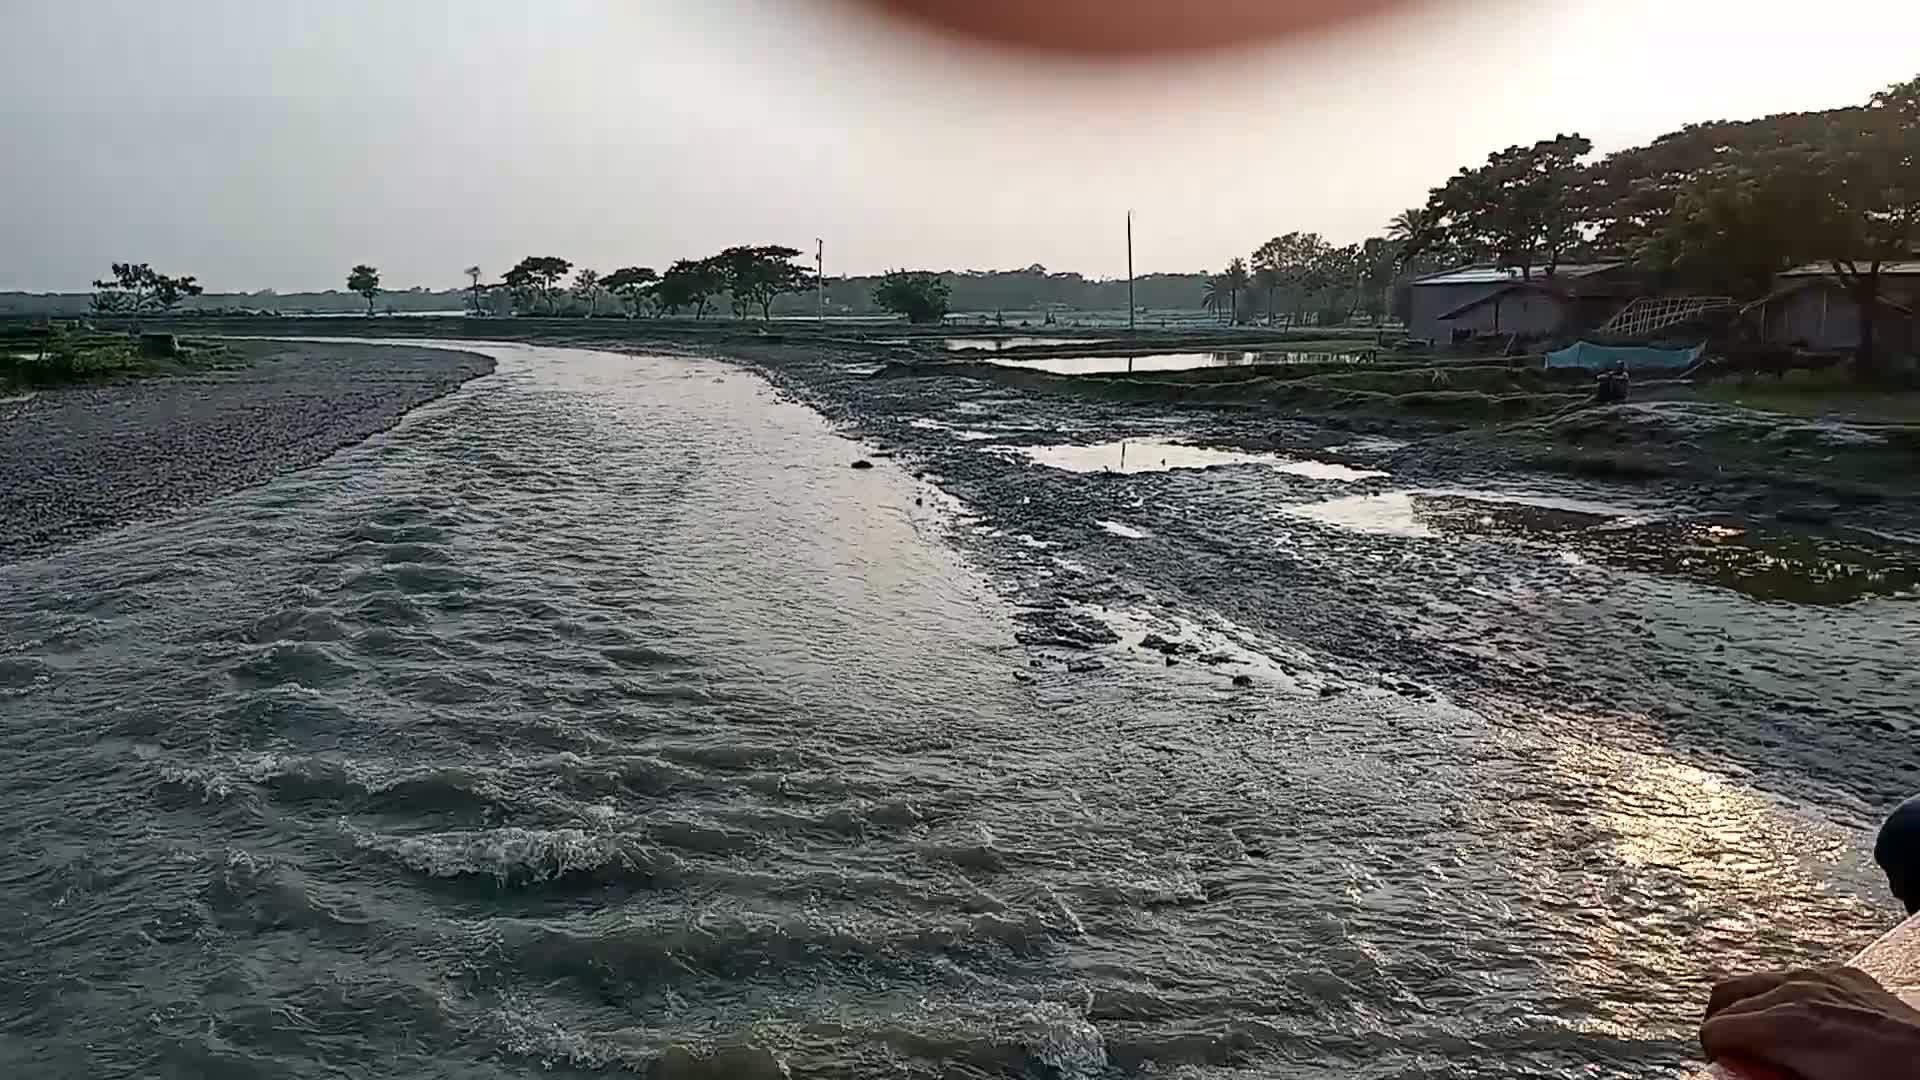 The water of the river is playing beautiful waves.